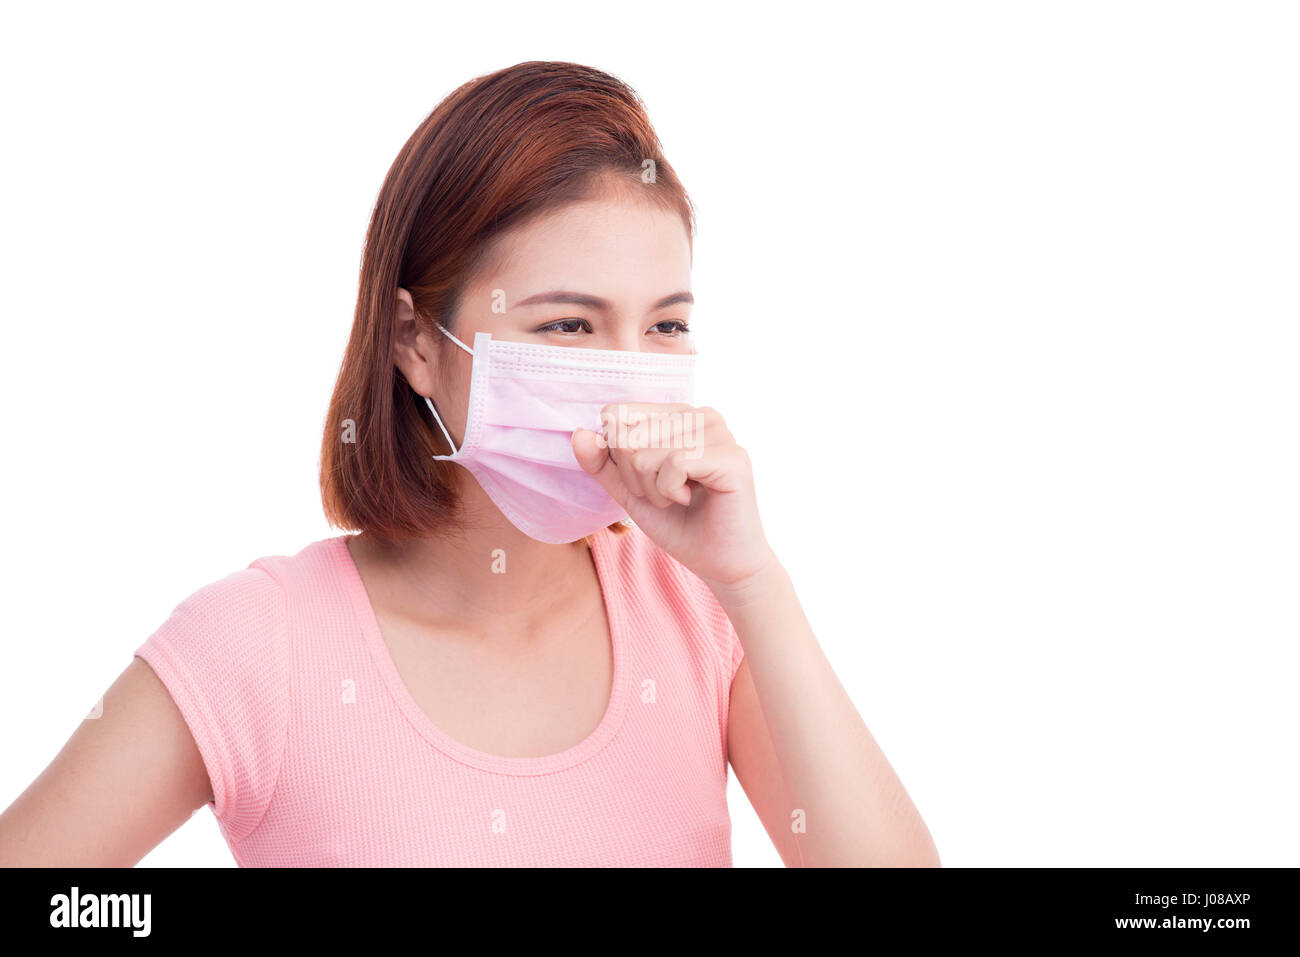 How to face wear mask when sick fotos